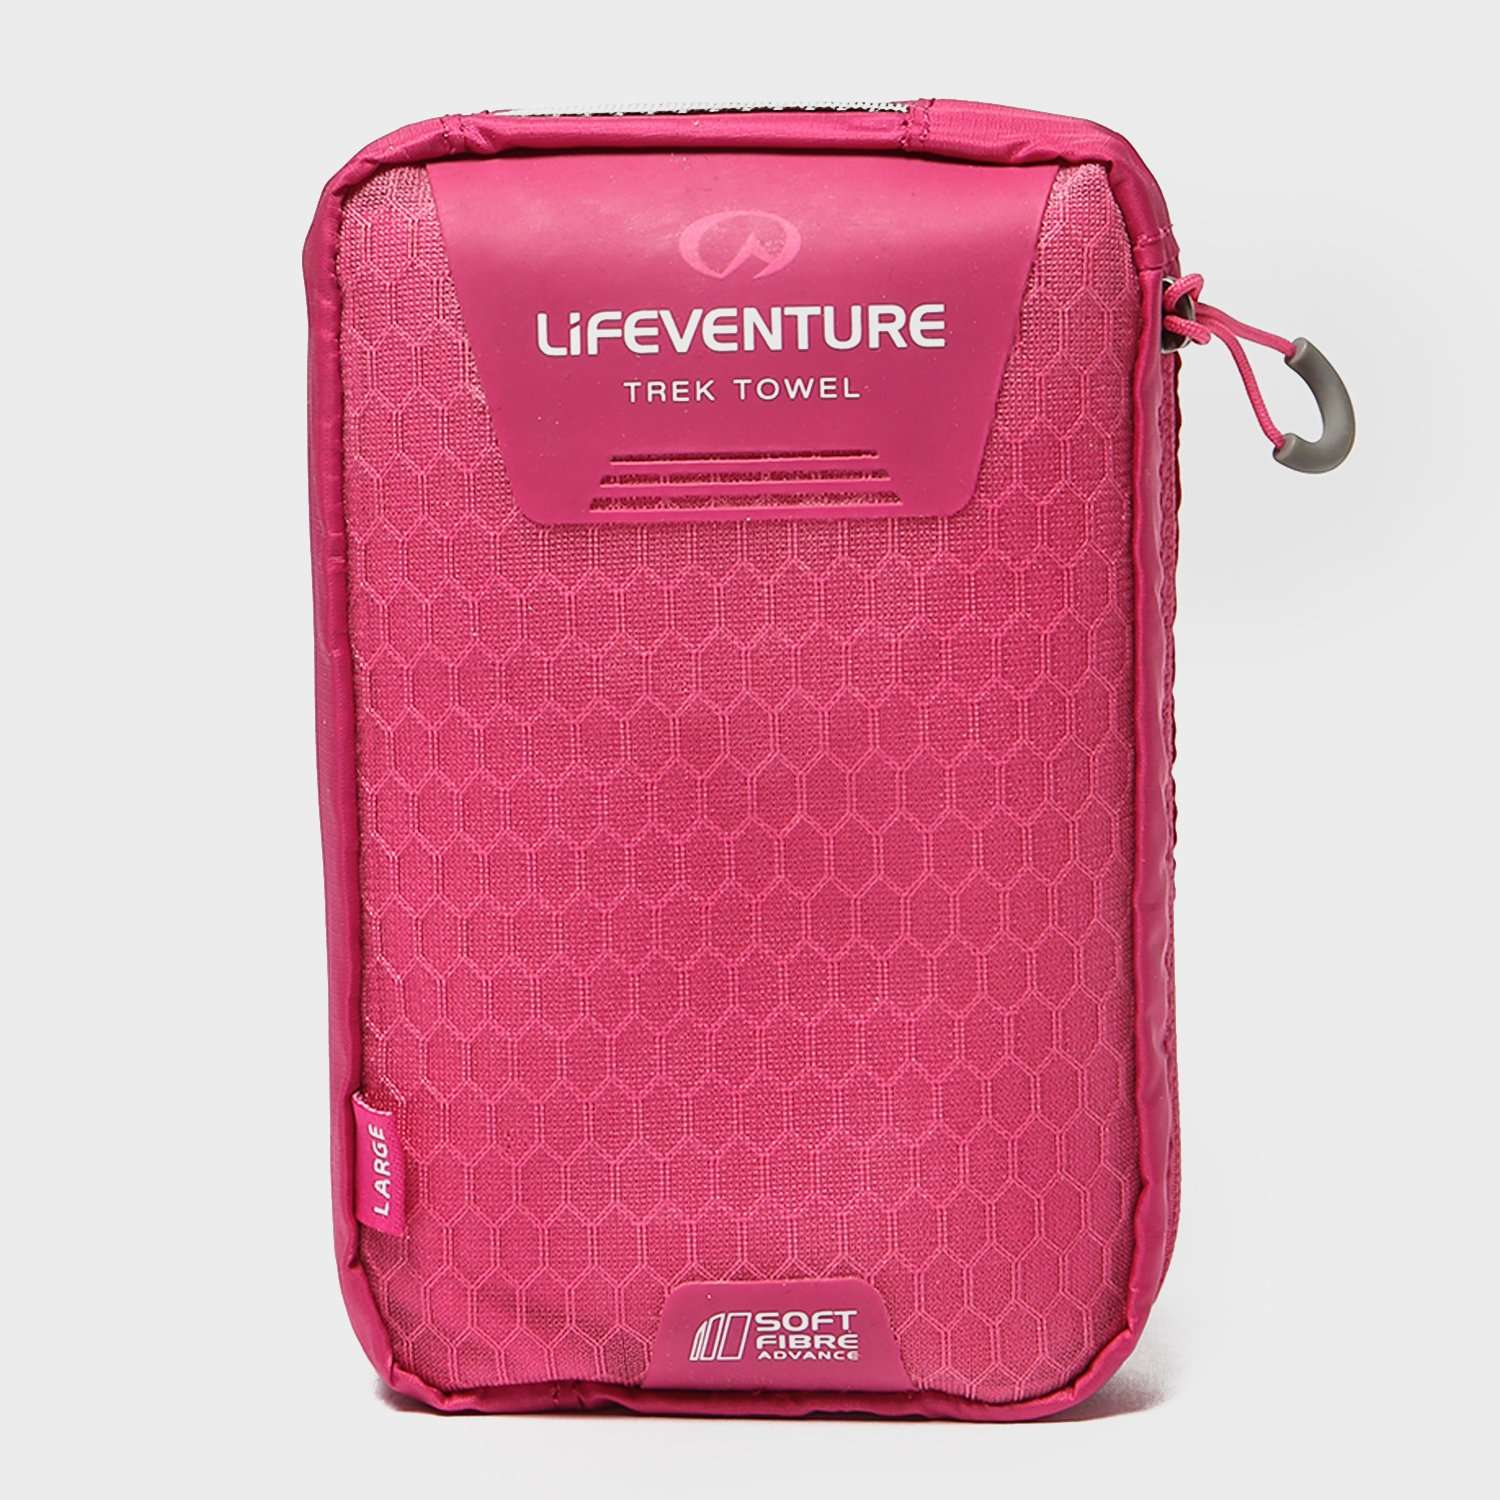 LIFEVENTURE SoftFibre Travel Towel